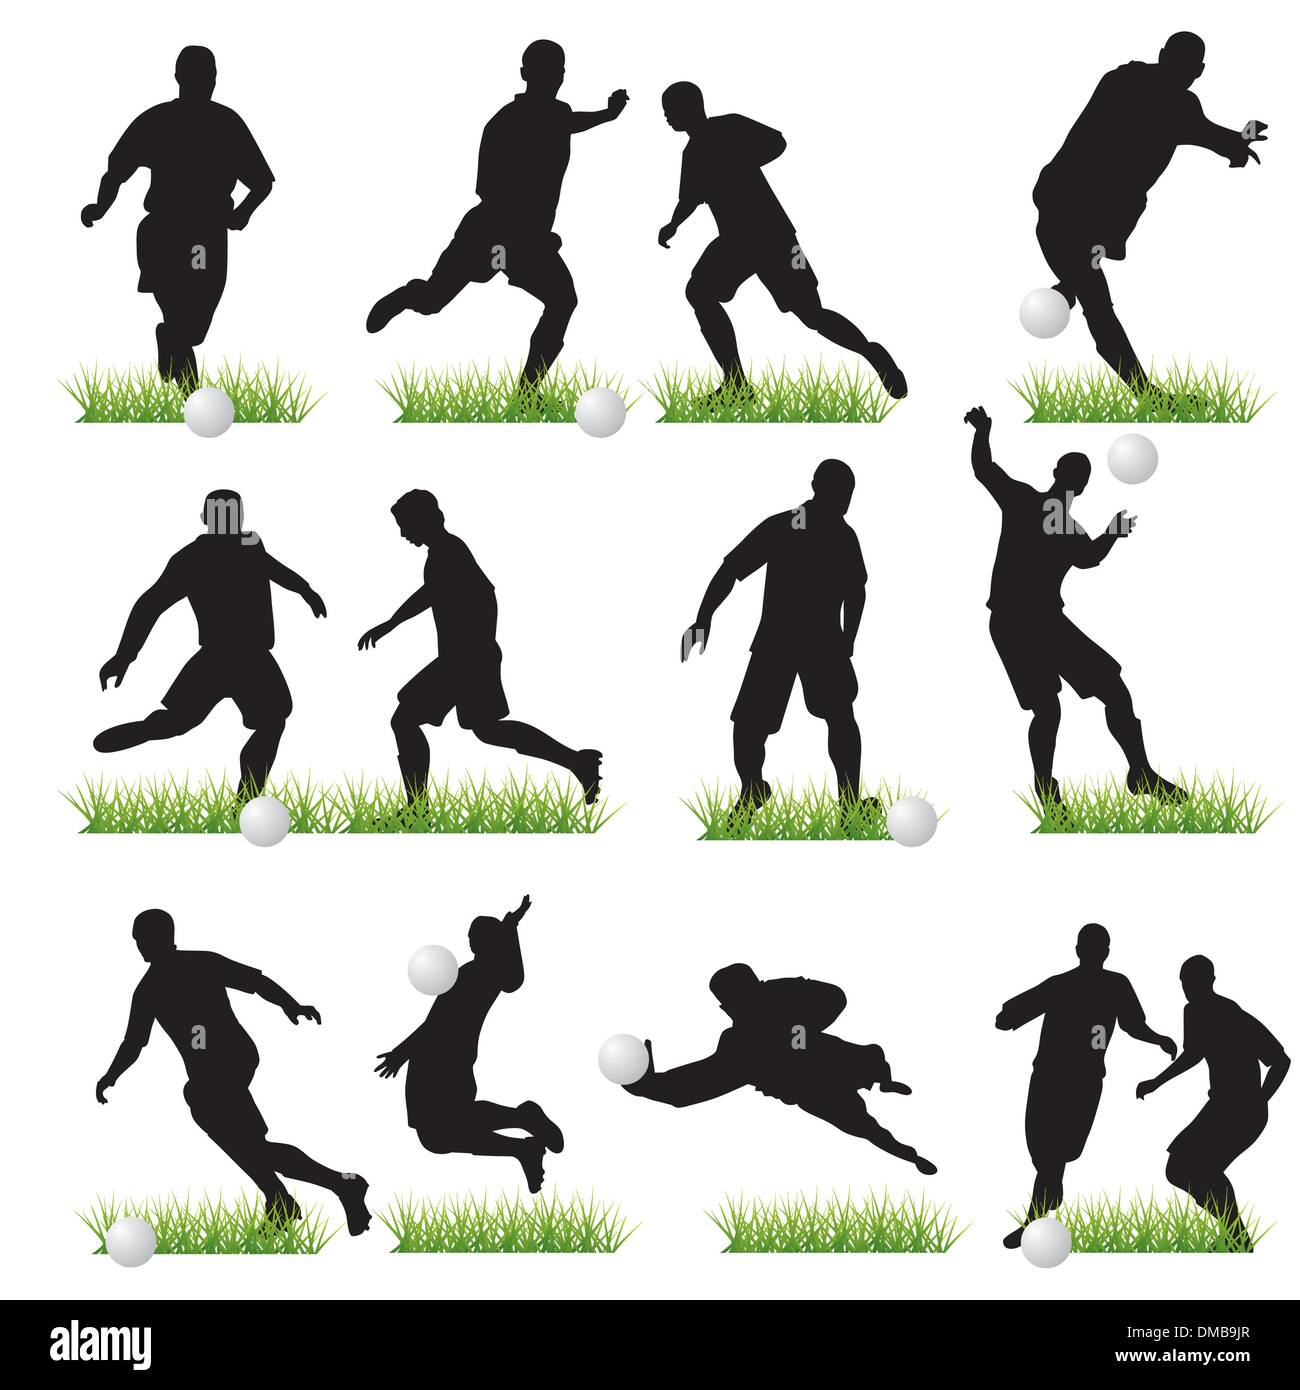 12 Football Players Silhouettes Set - Stock Vector